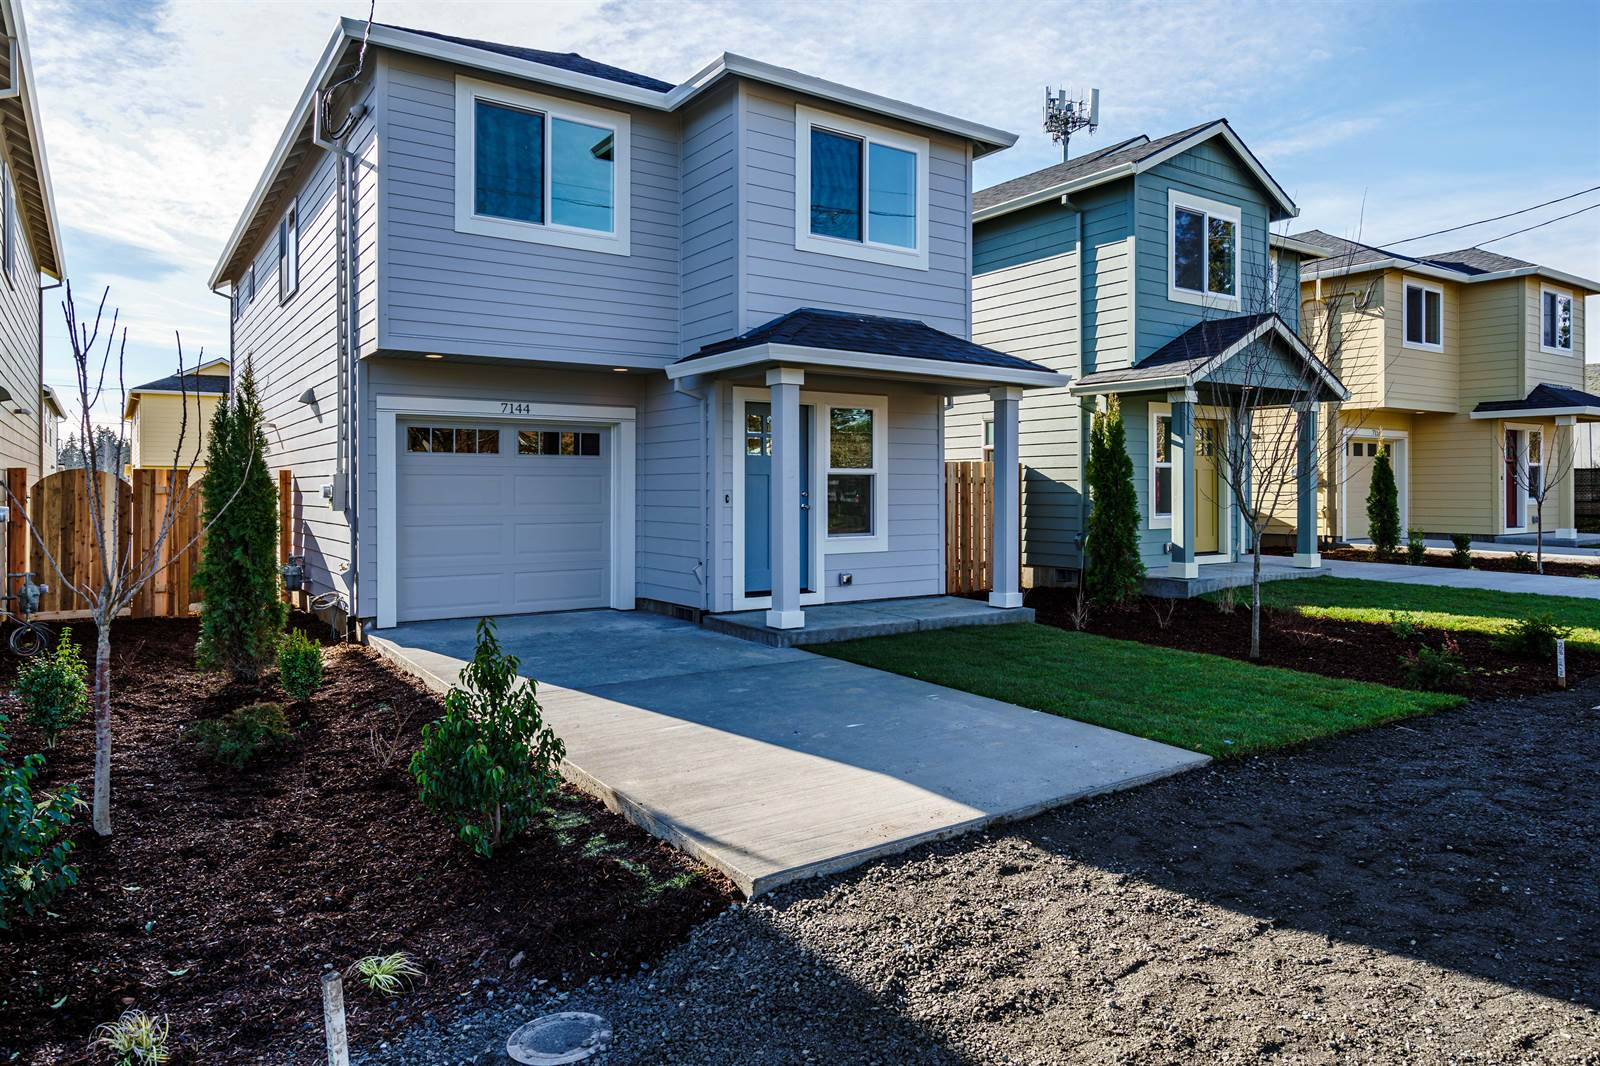 7144 SE Fern St., Portland, OR 97206